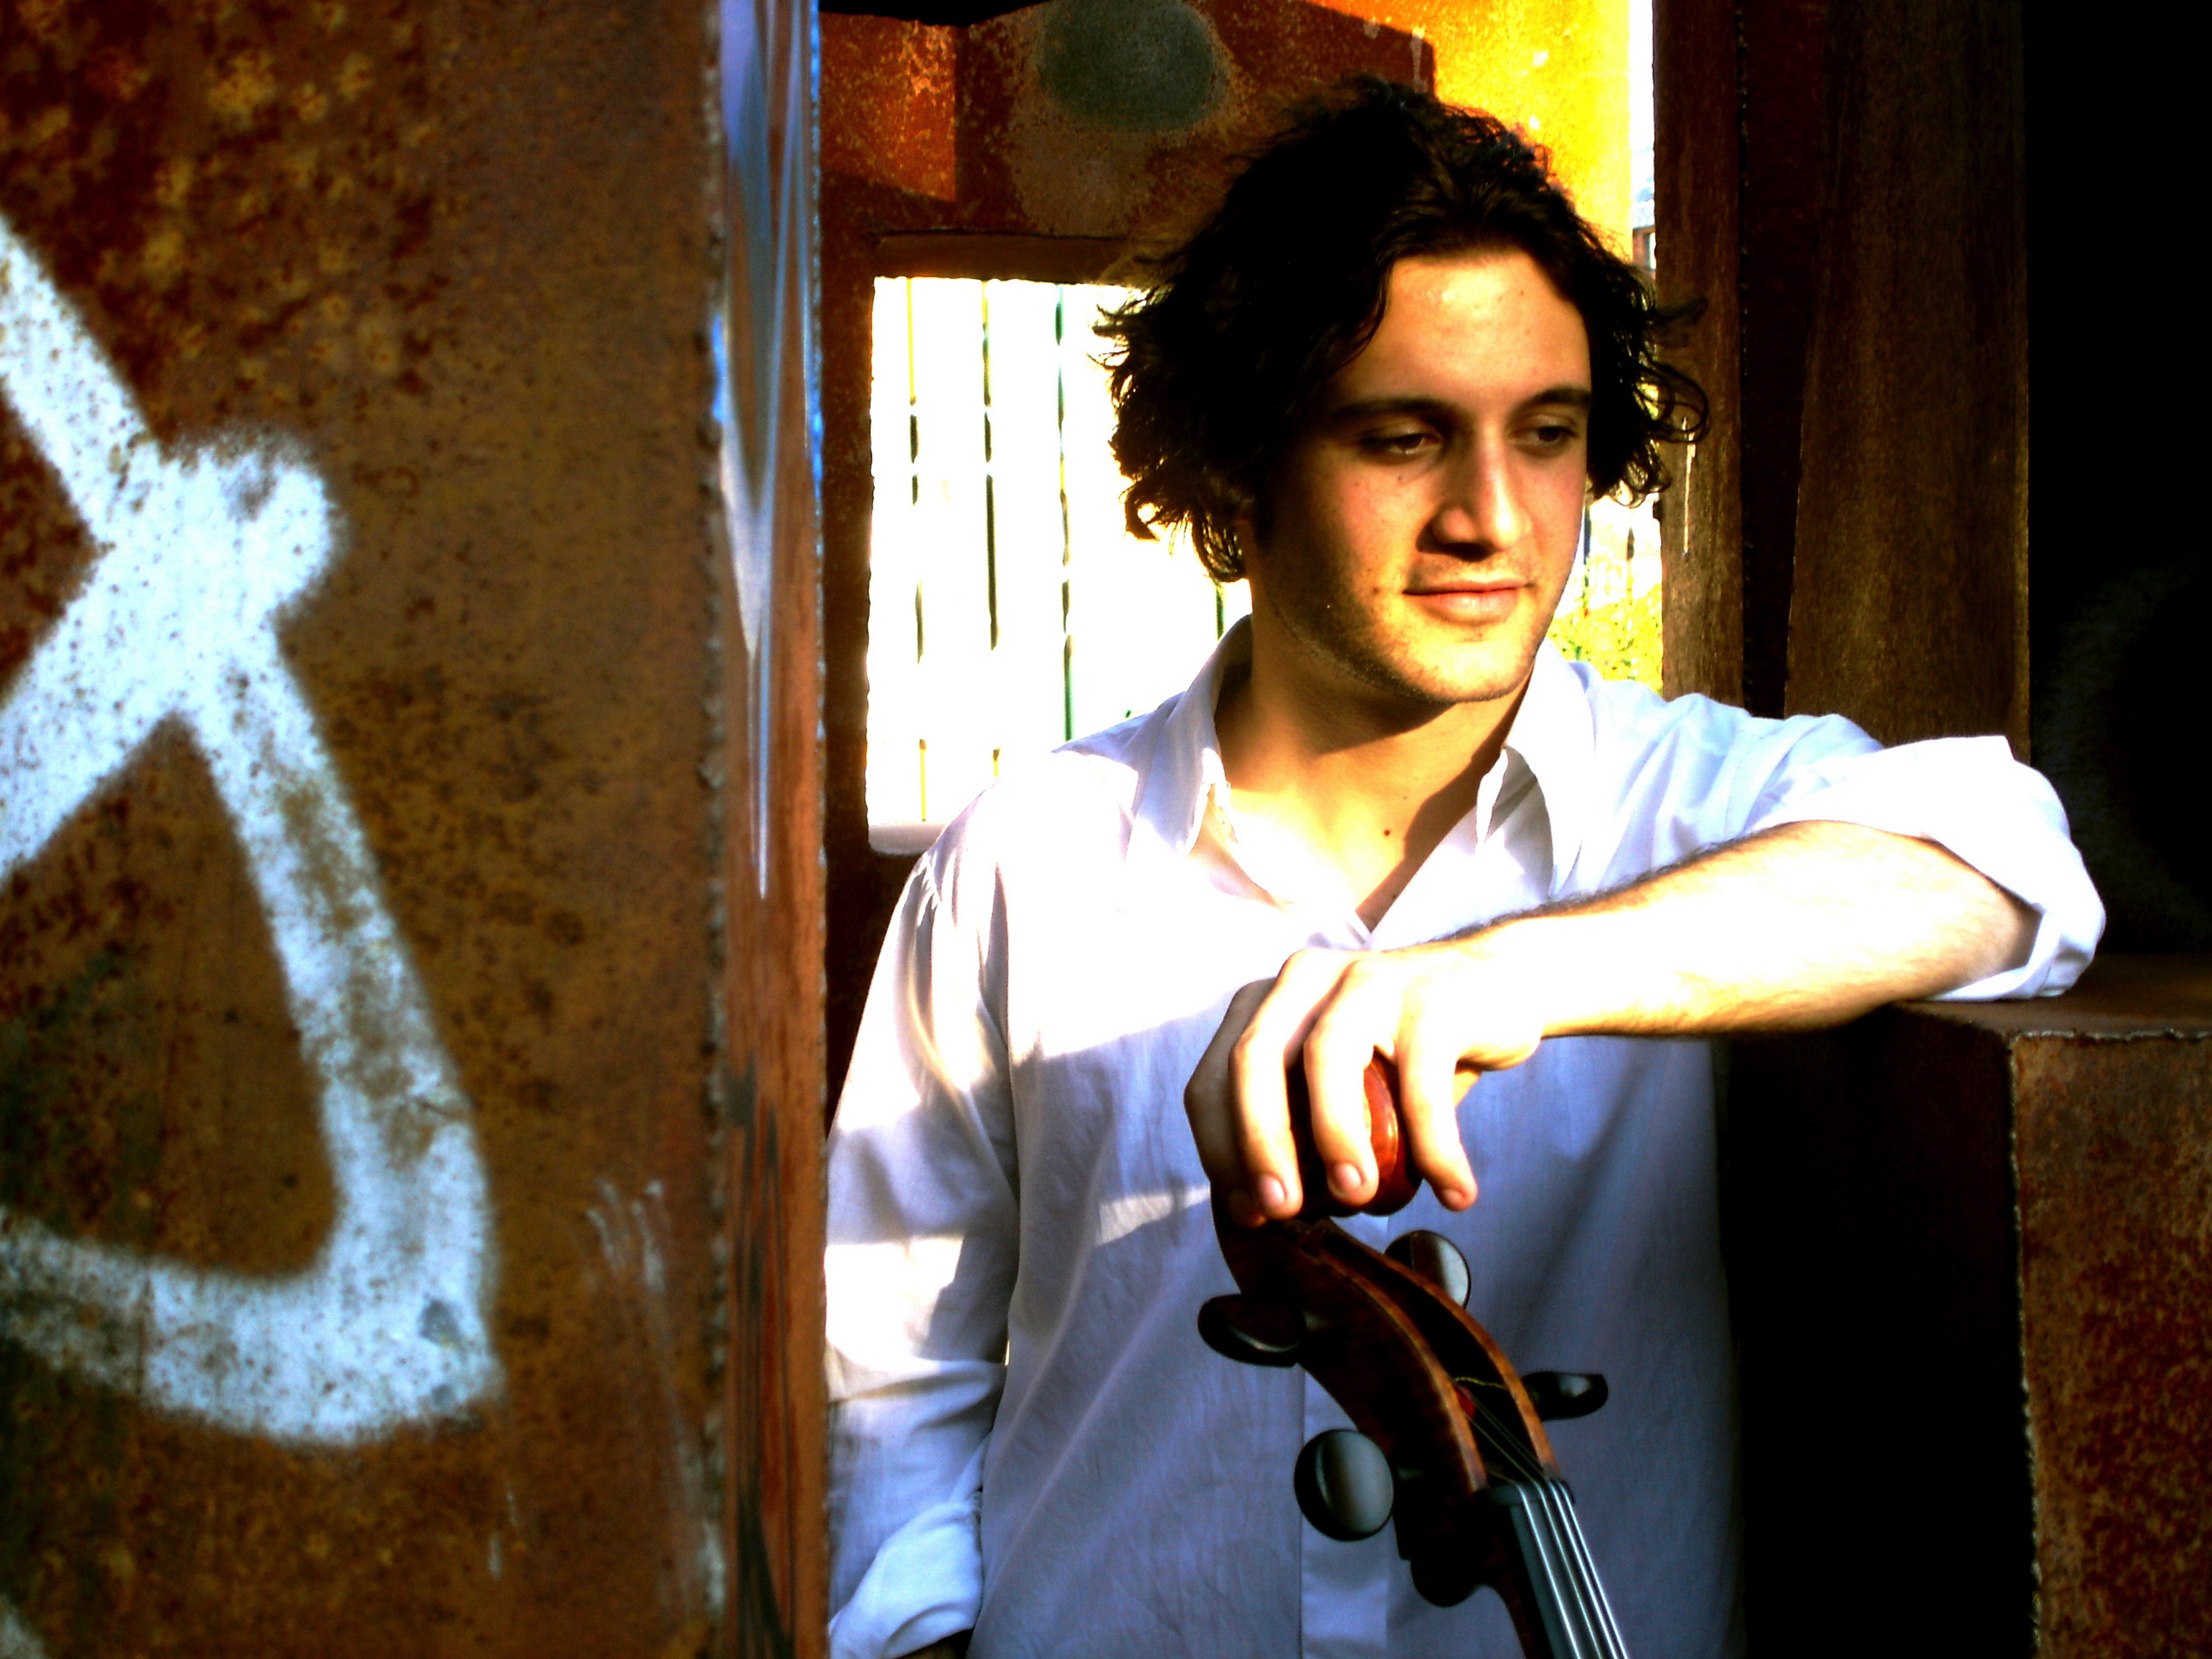 Nicholas Altstaedt will perform the soaring melodies of Sir Edward Elgar's cello concerto.